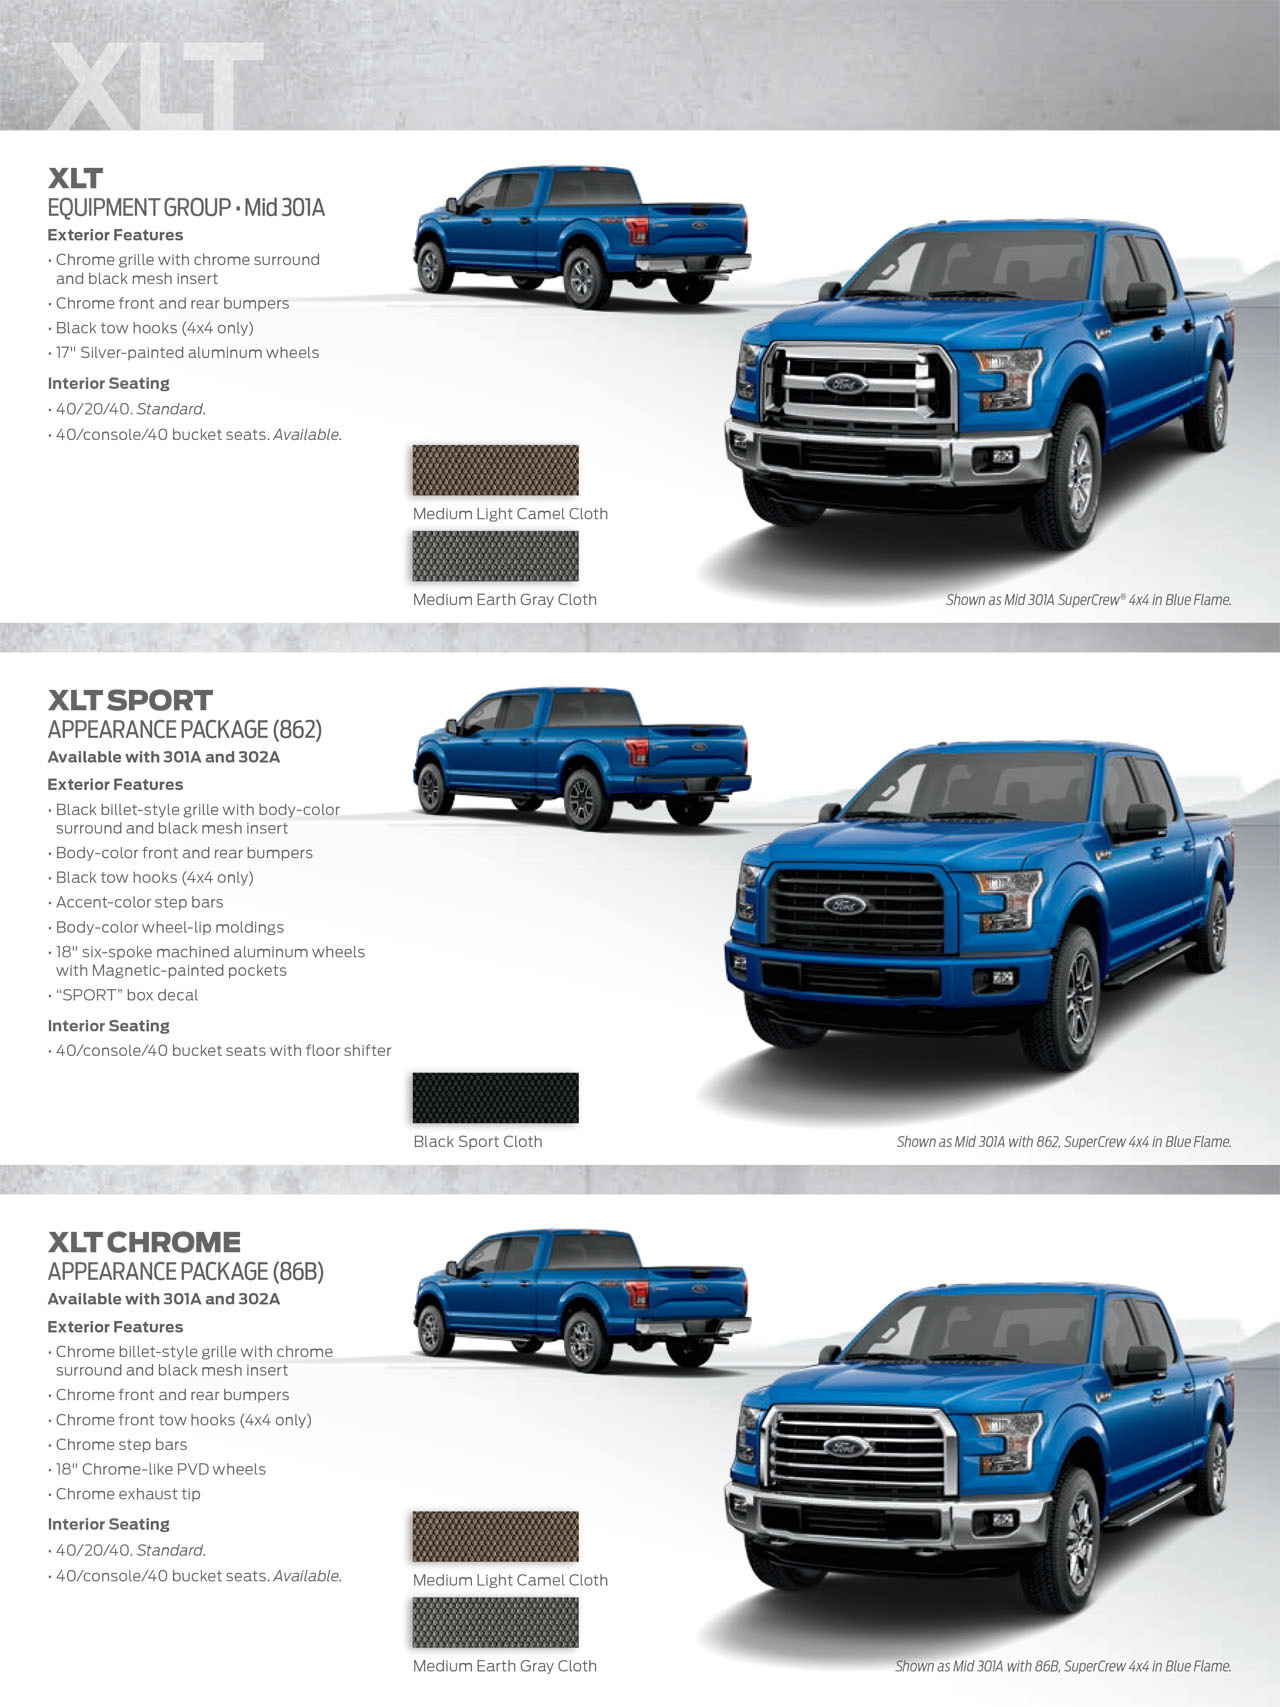 Ford F 150 Trim Levels >> 2015 Ford F 150 Shows Its Styling Potential With New Appearance